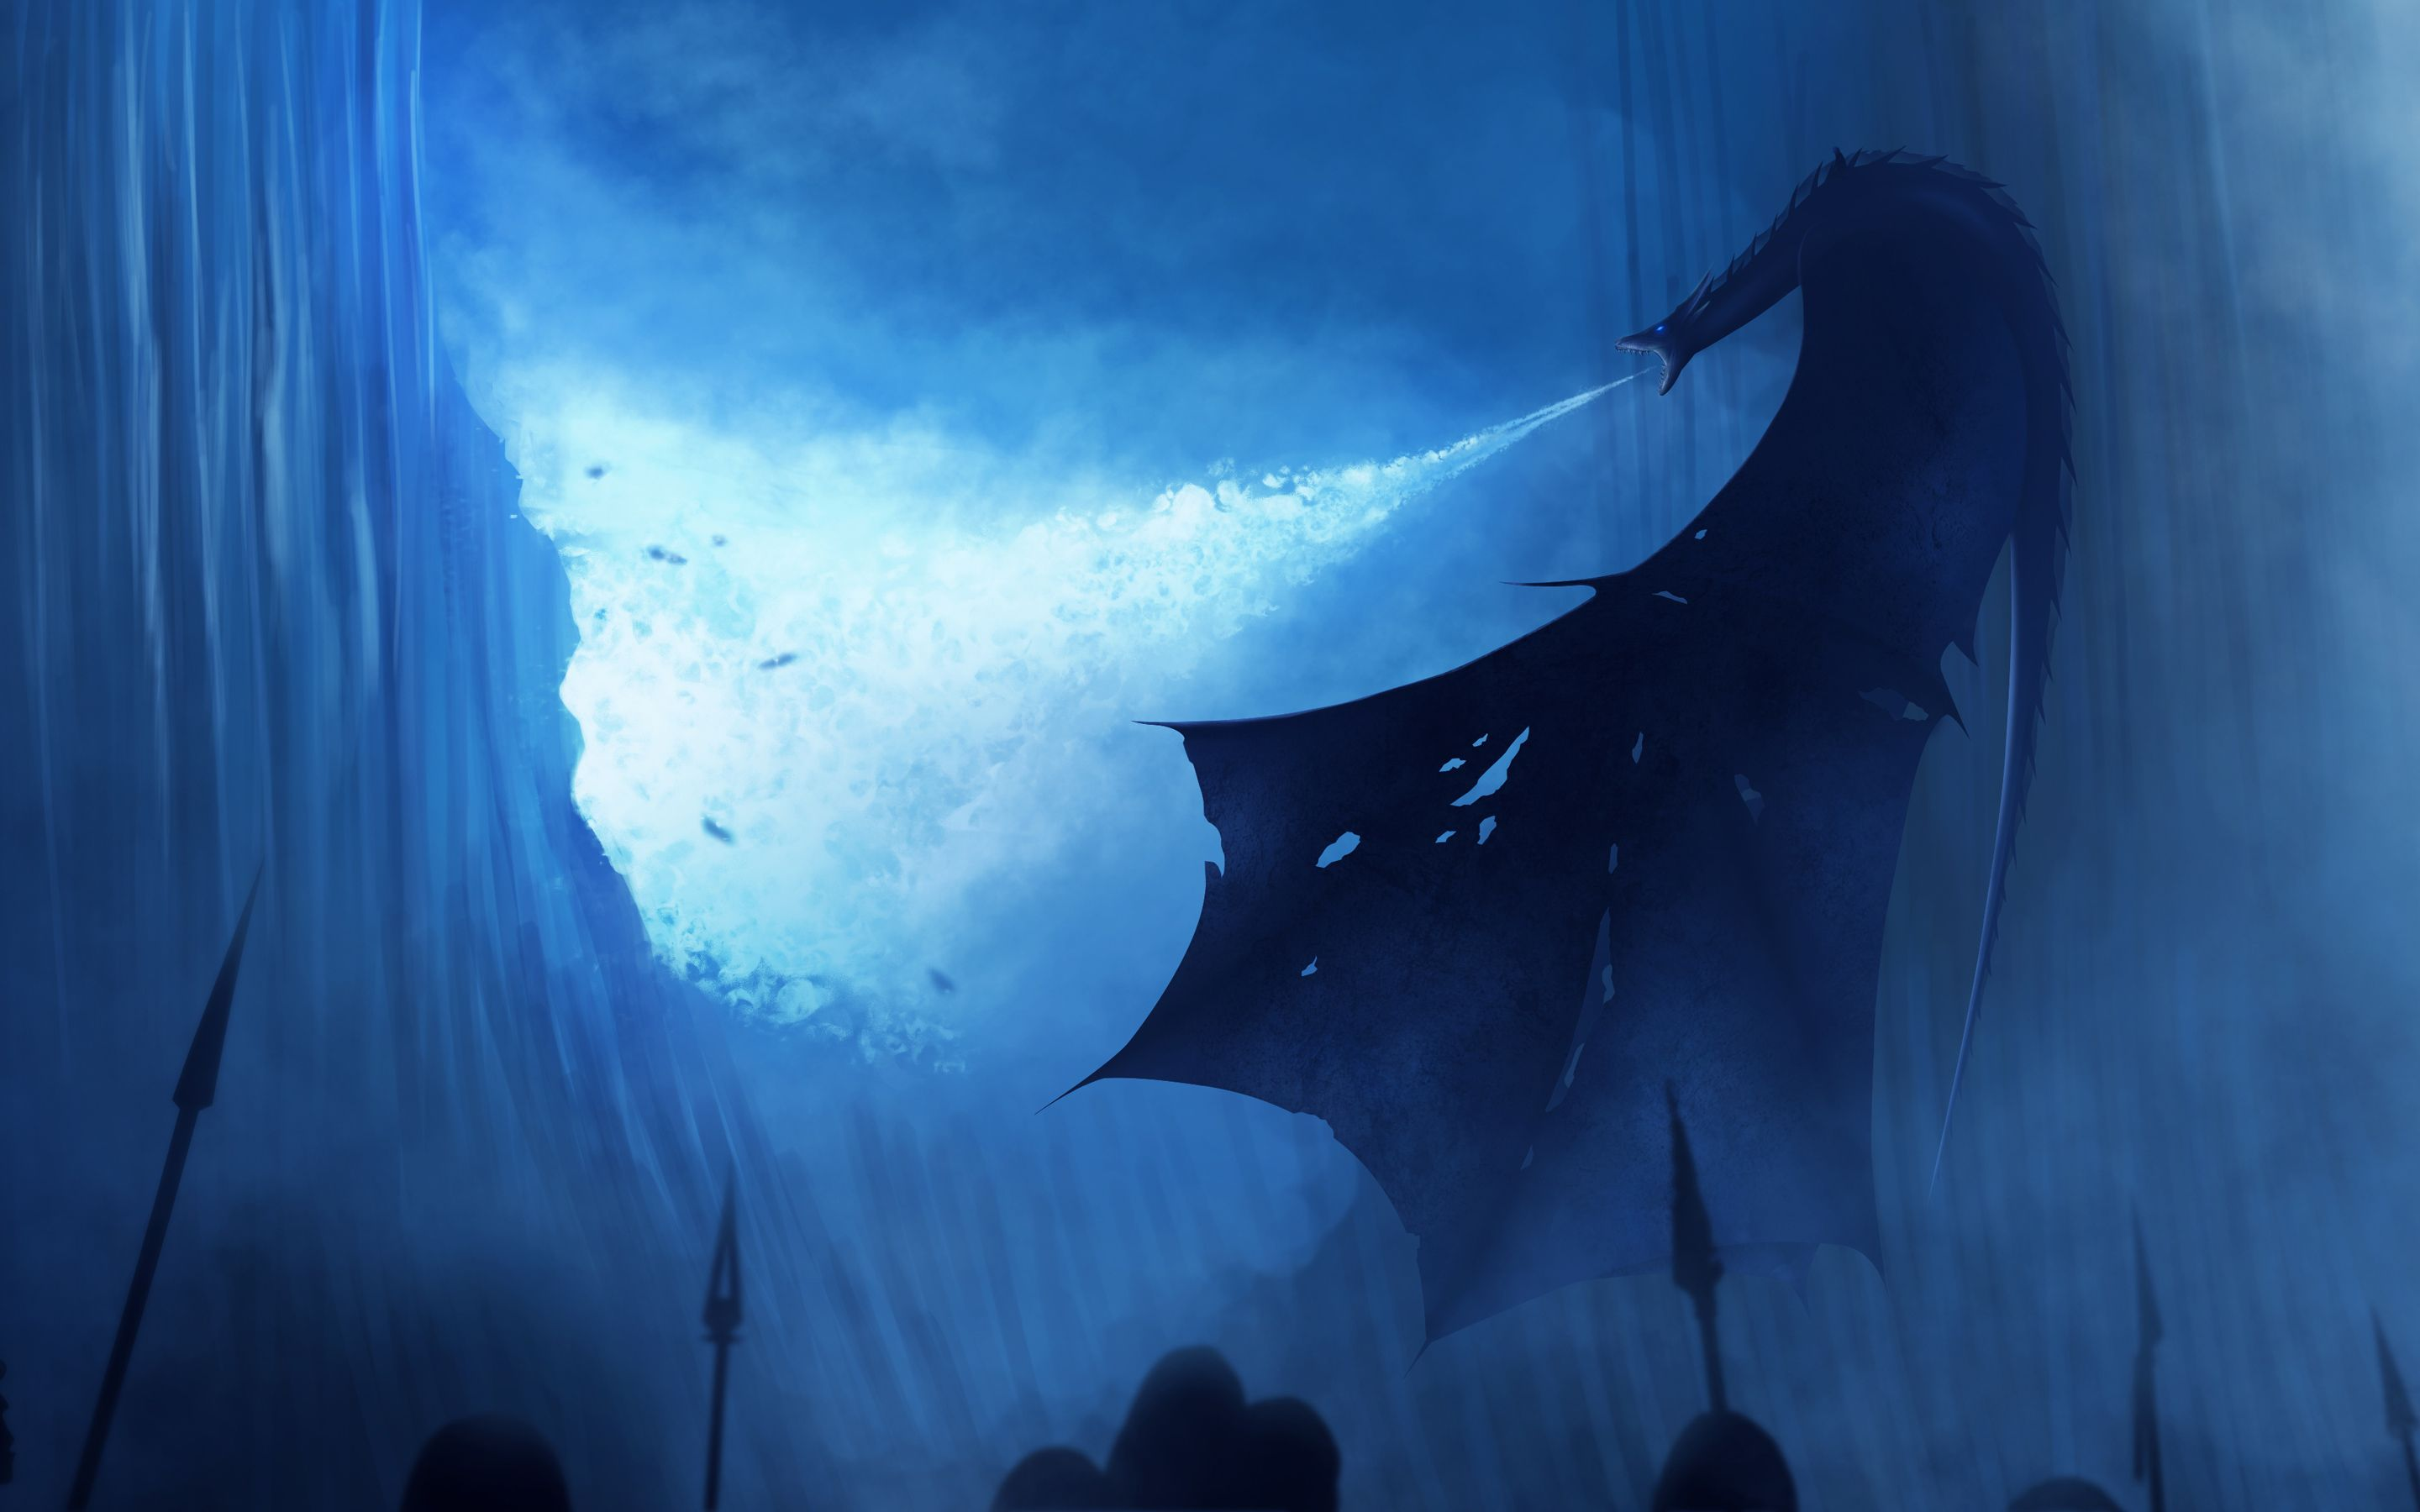 Best Game Of Thrones Wallpapers Top Free Best Game Of Thrones